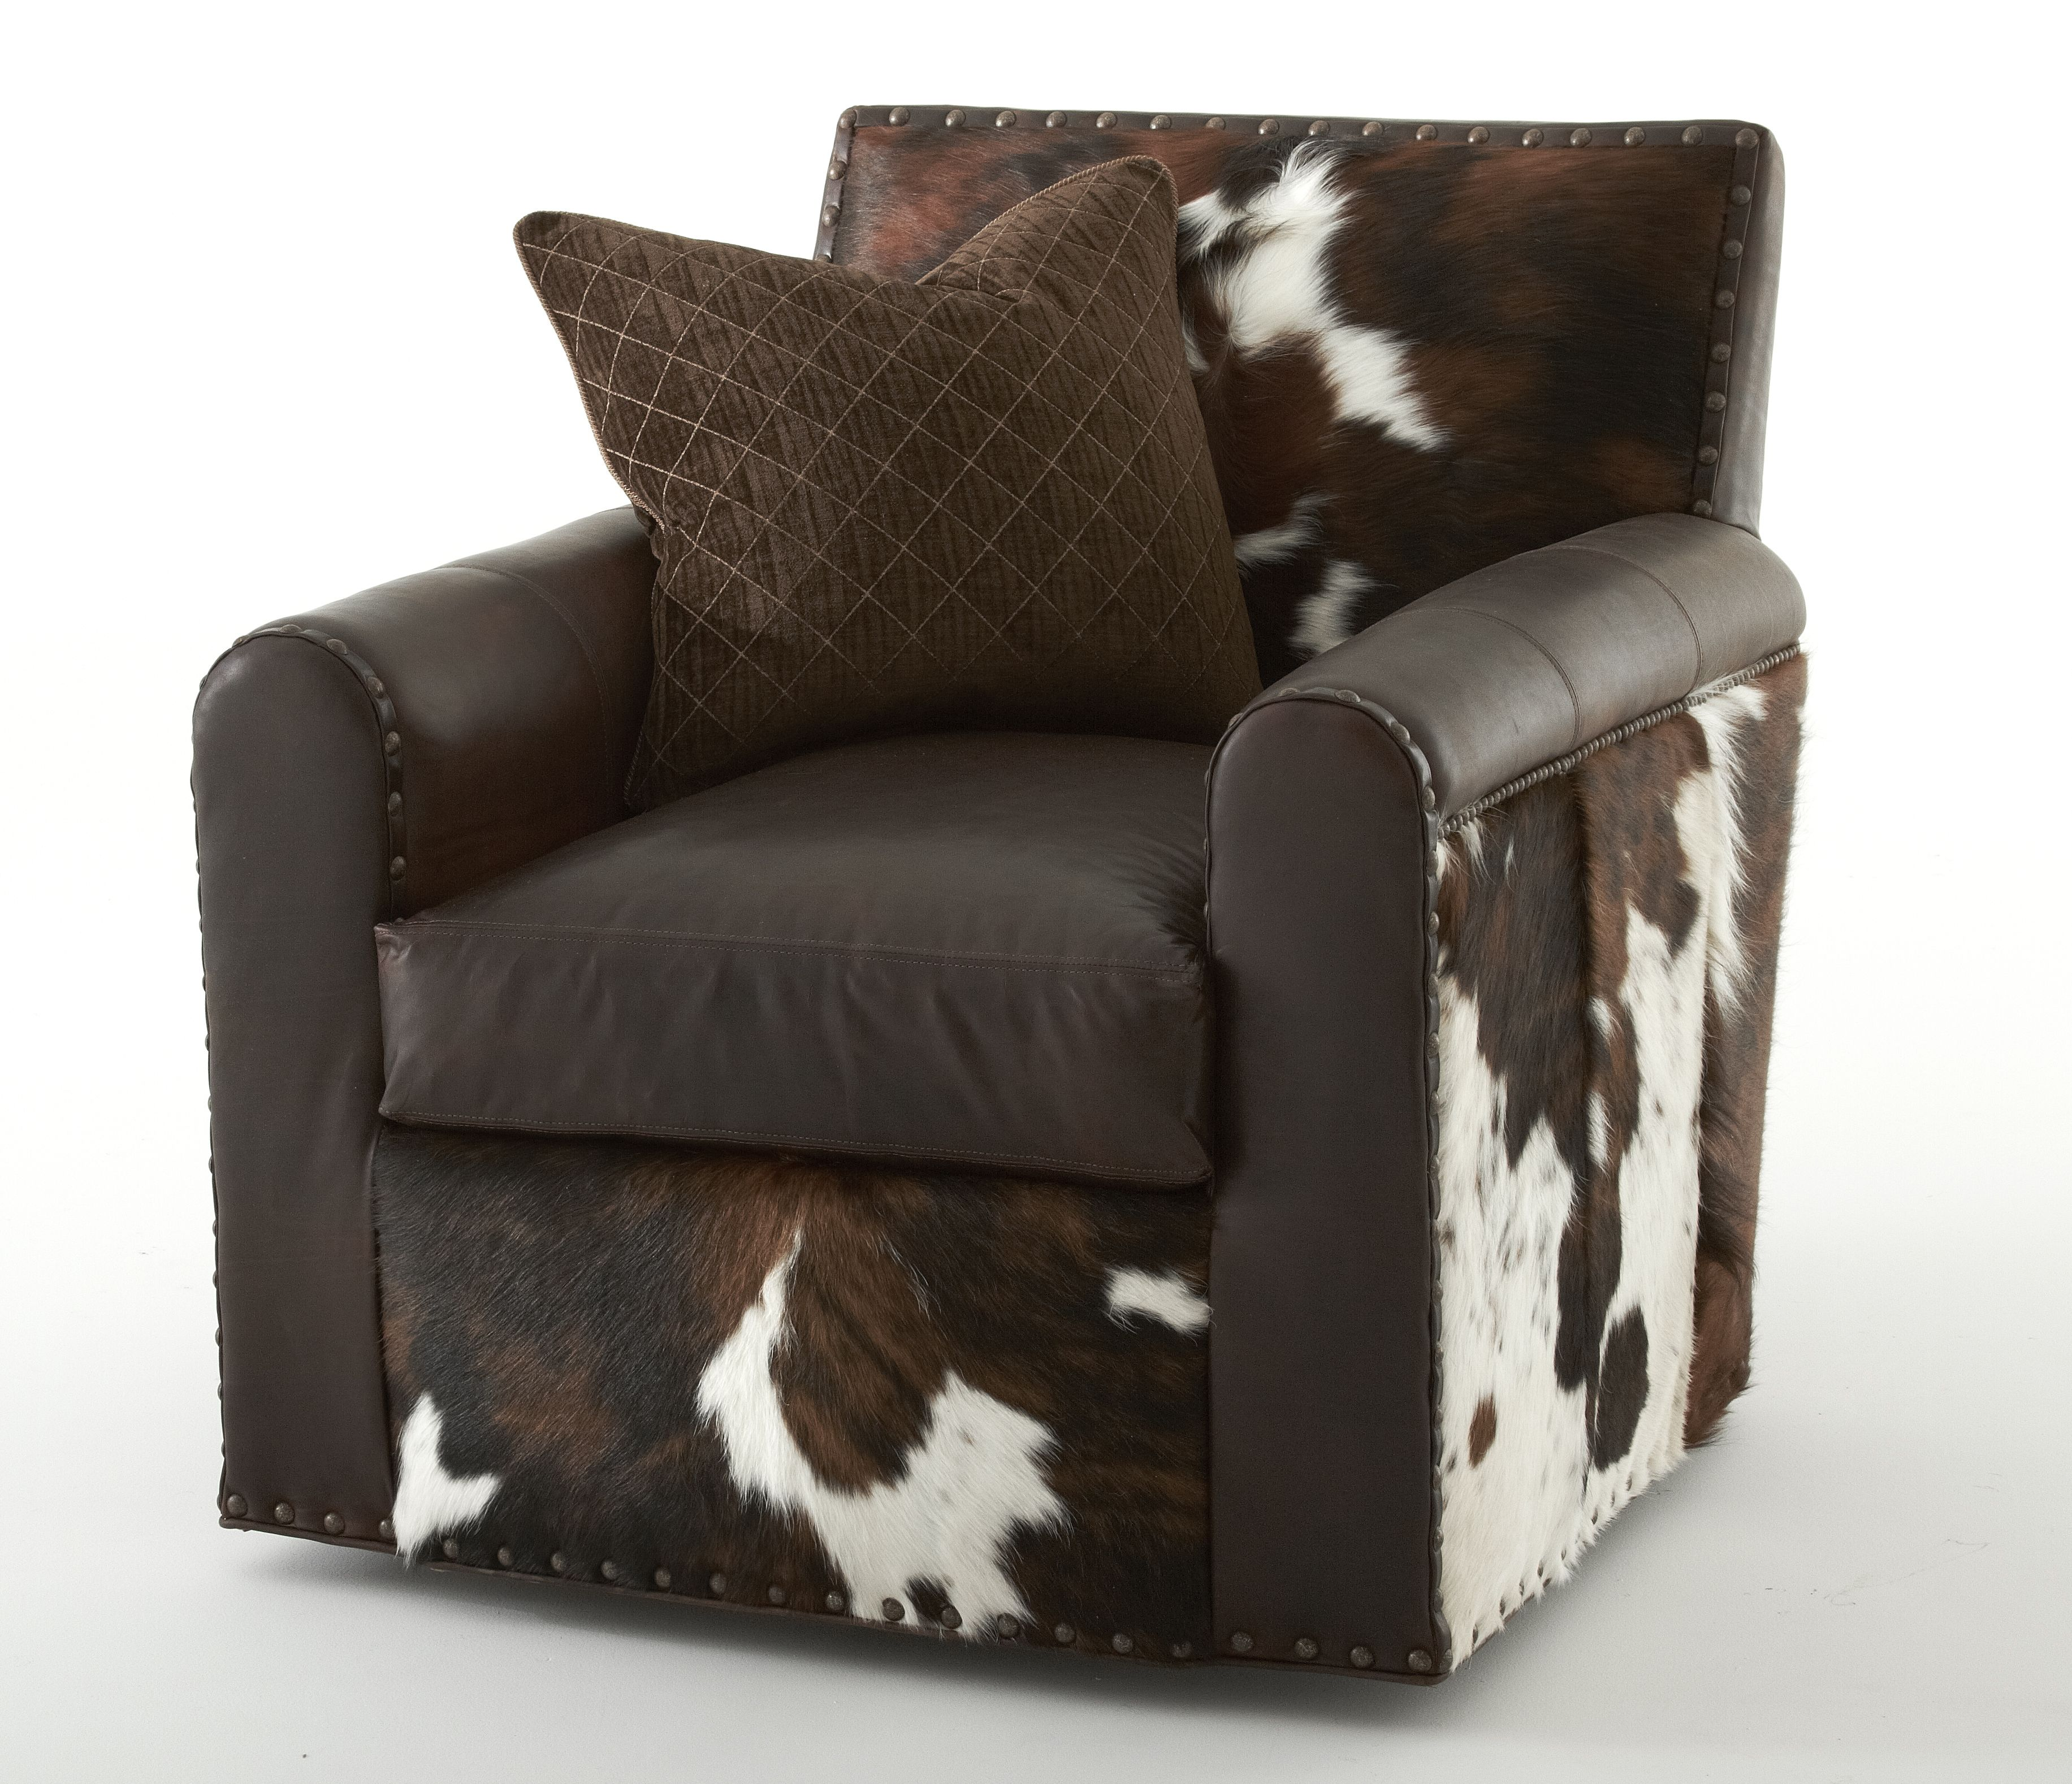 Hair On Hide Chair Style L963 Chair In Cowboy Cocoa Right This Rustic